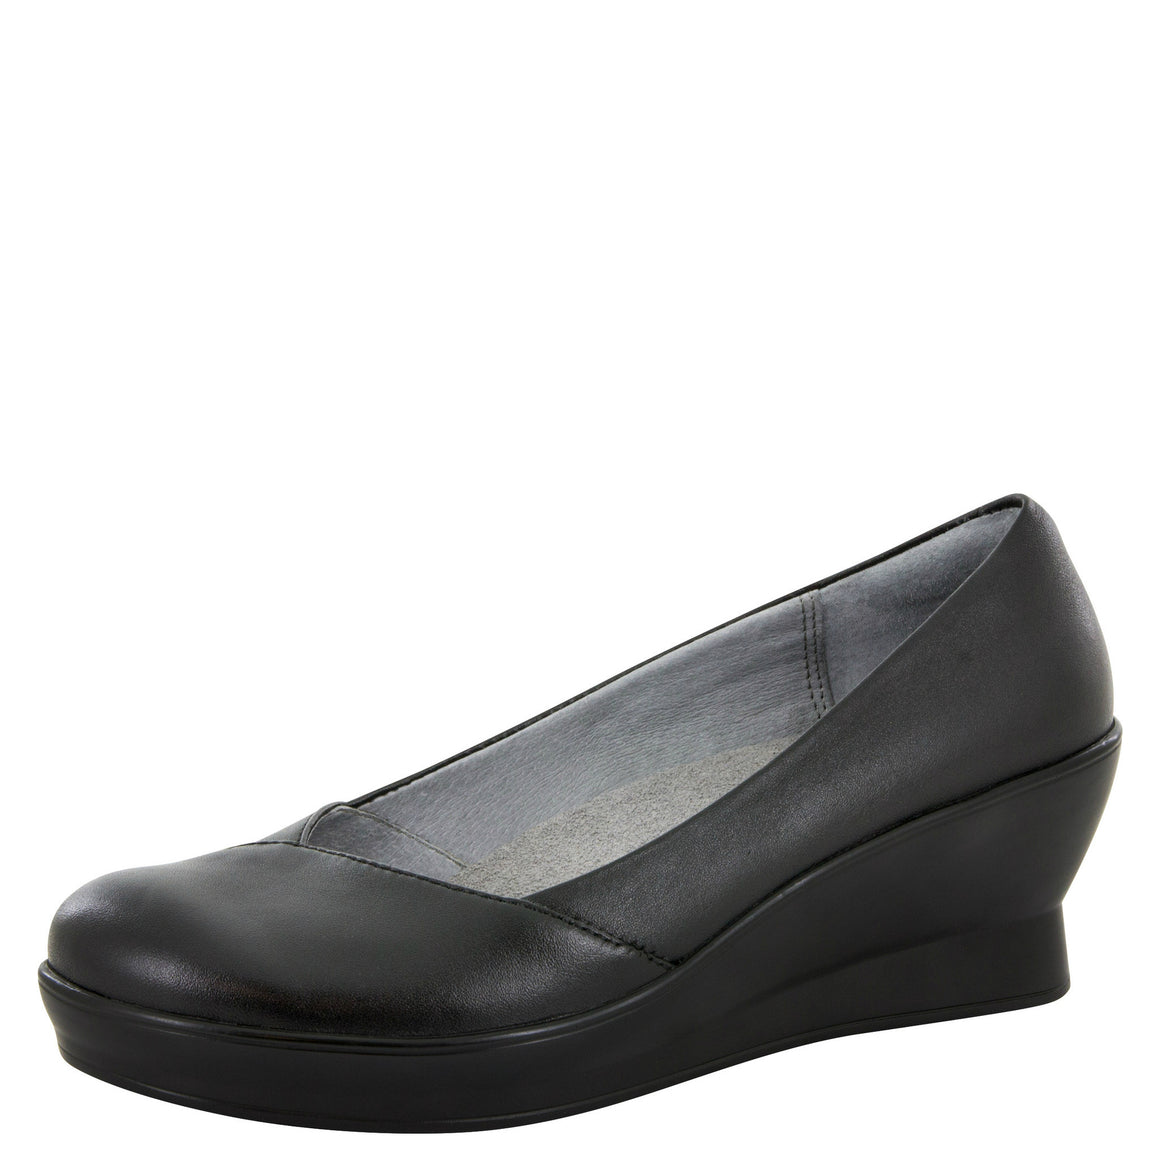 Alegria Women's Flirt Slip-On Wedge - Black Nappa FLI-601 - ShoeShackOnline